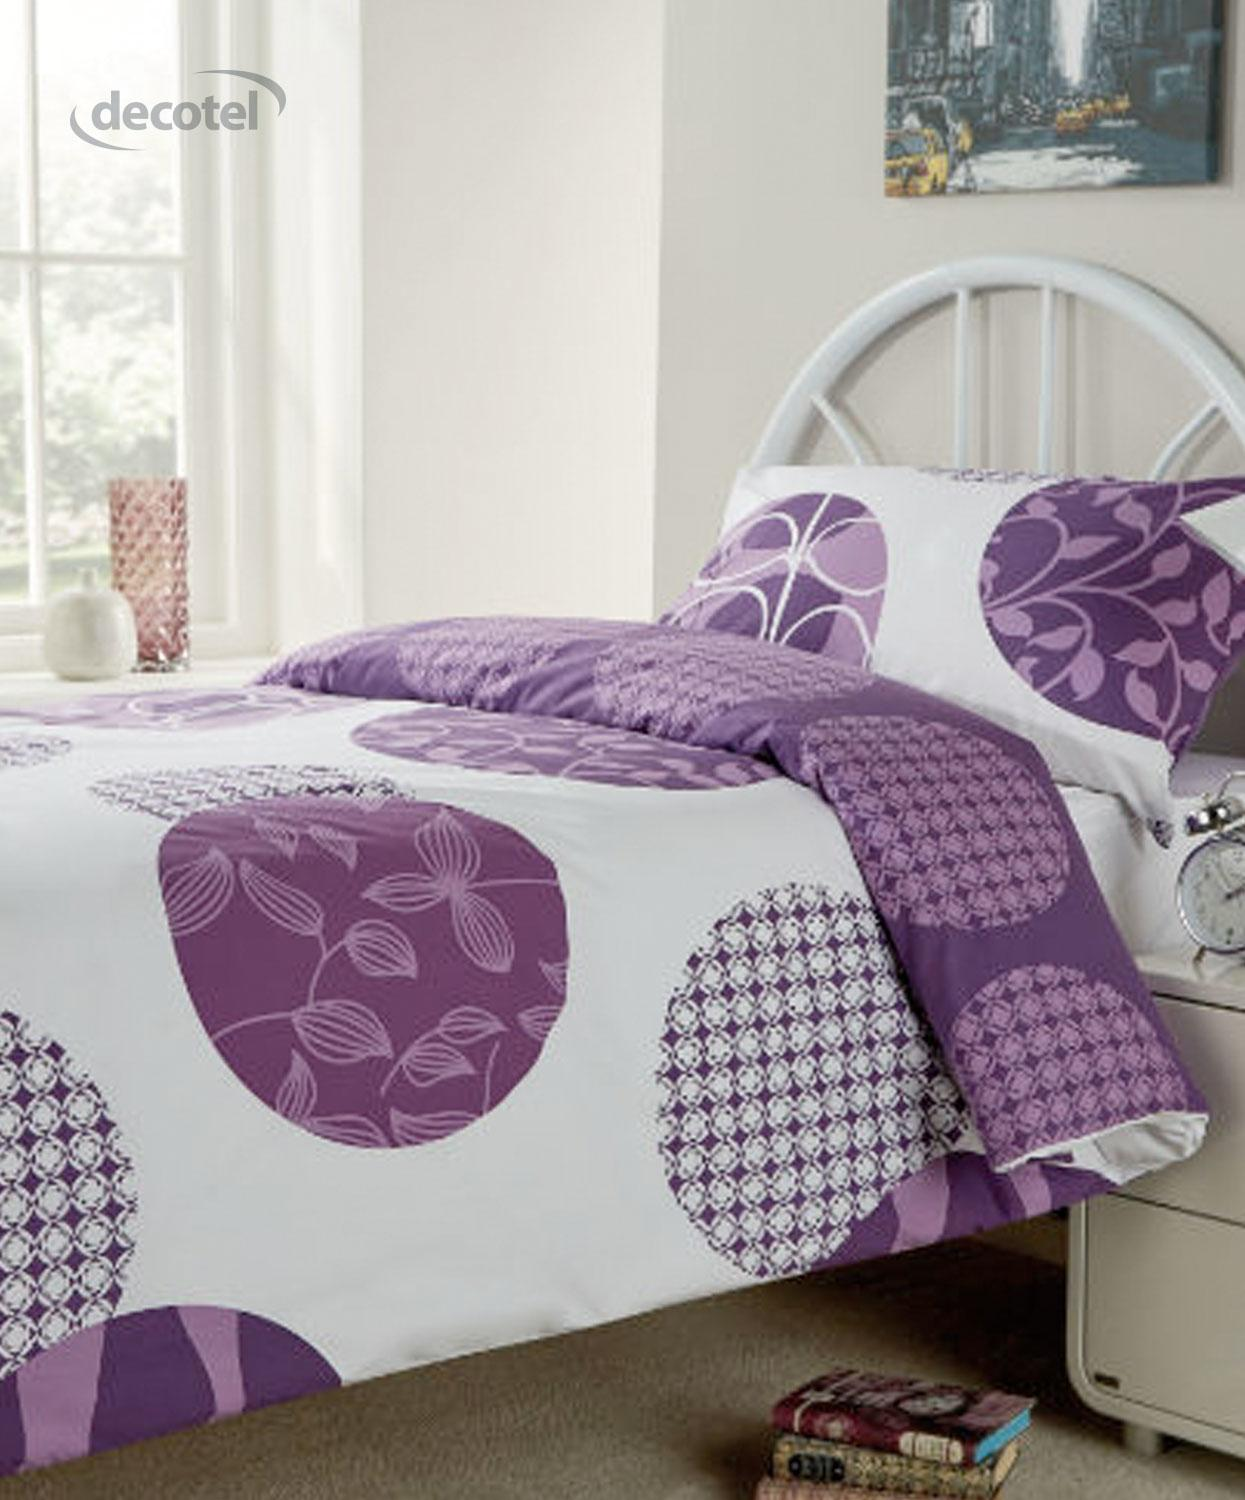 Woodland Duvet Cover in purple